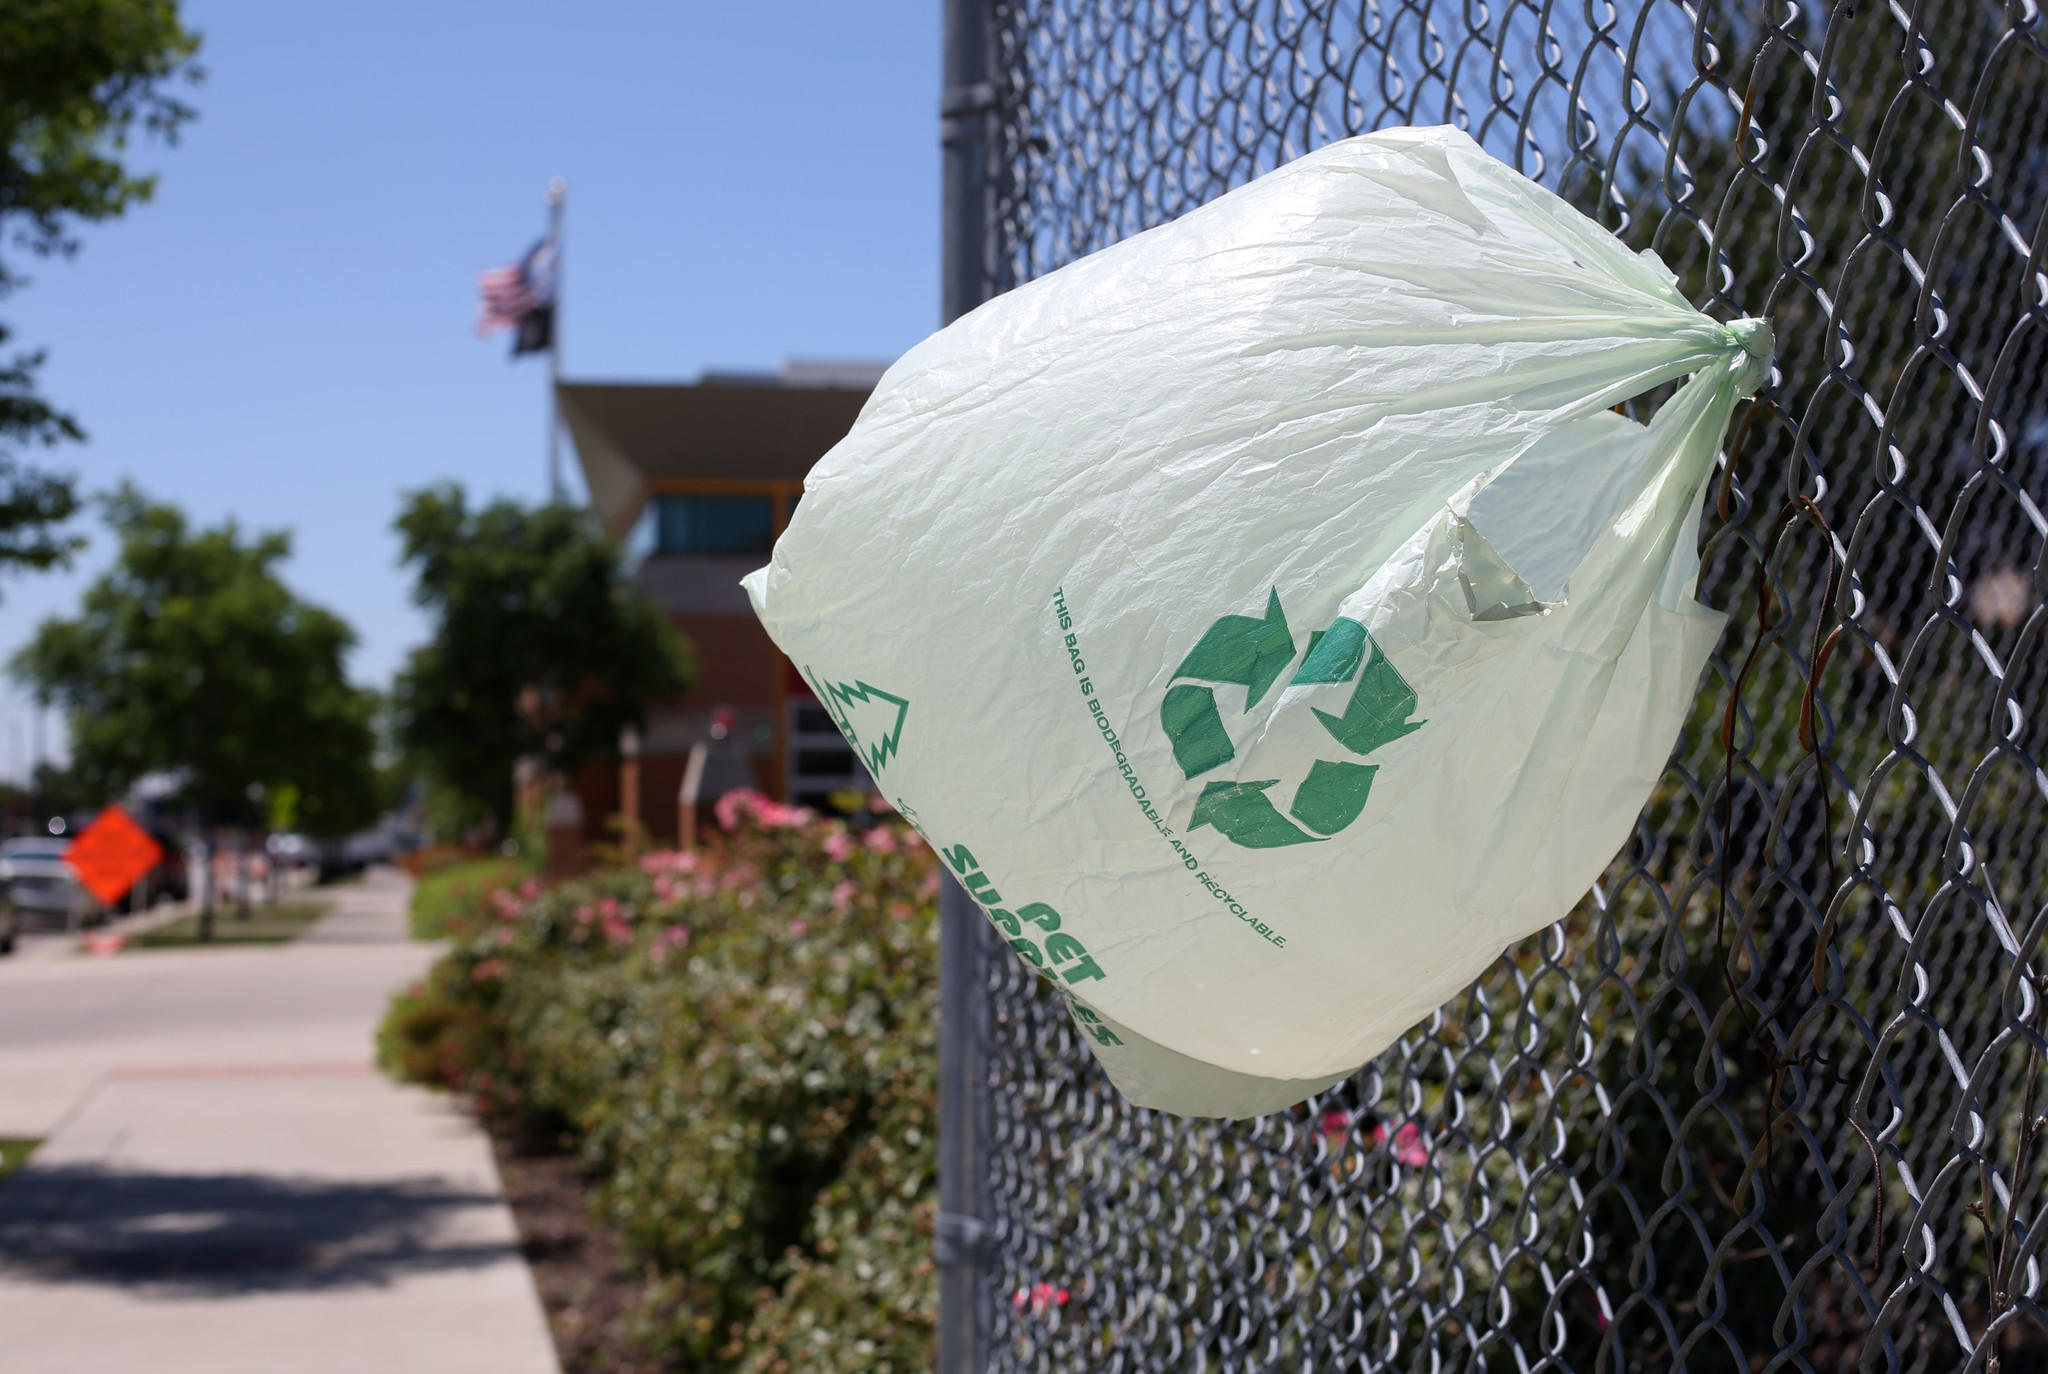 A Plastic bag hangs flapping from fence on Blue Island Avenue, Tuesday June 5, 2012.